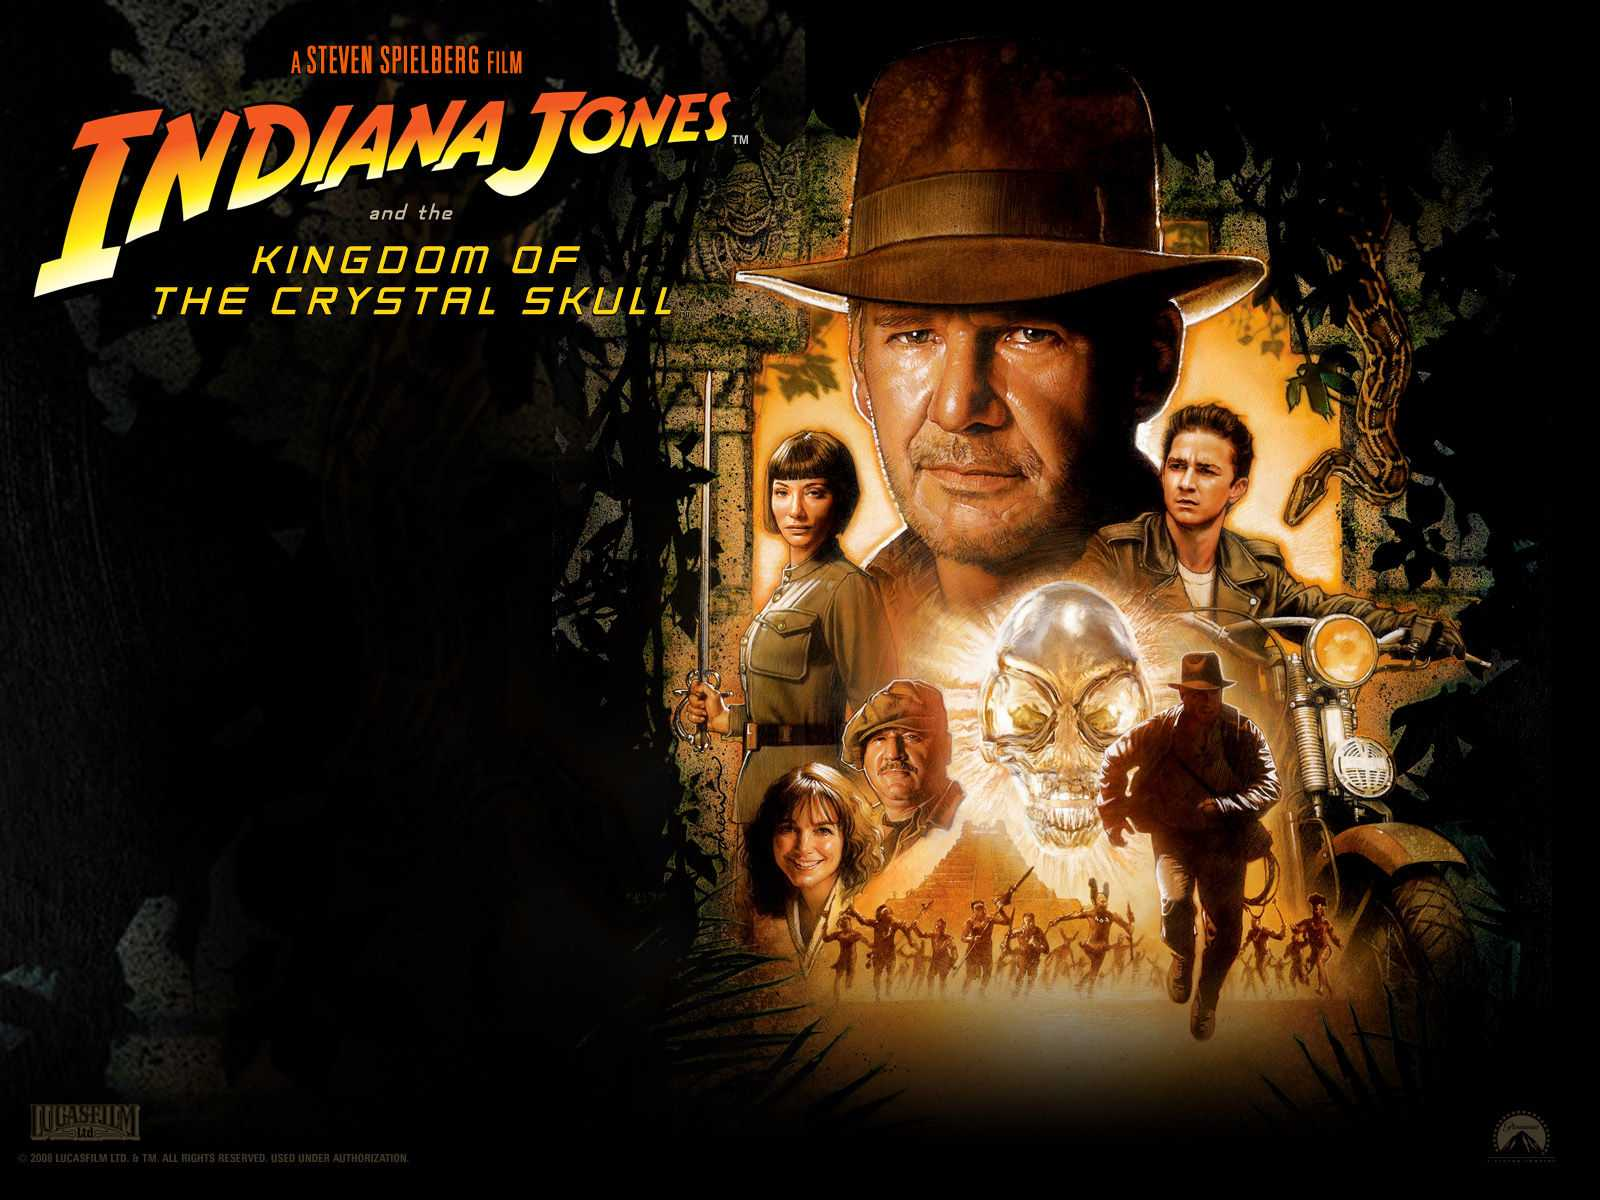 No New Indiana Jones Films For At Least 2 To 3 Years